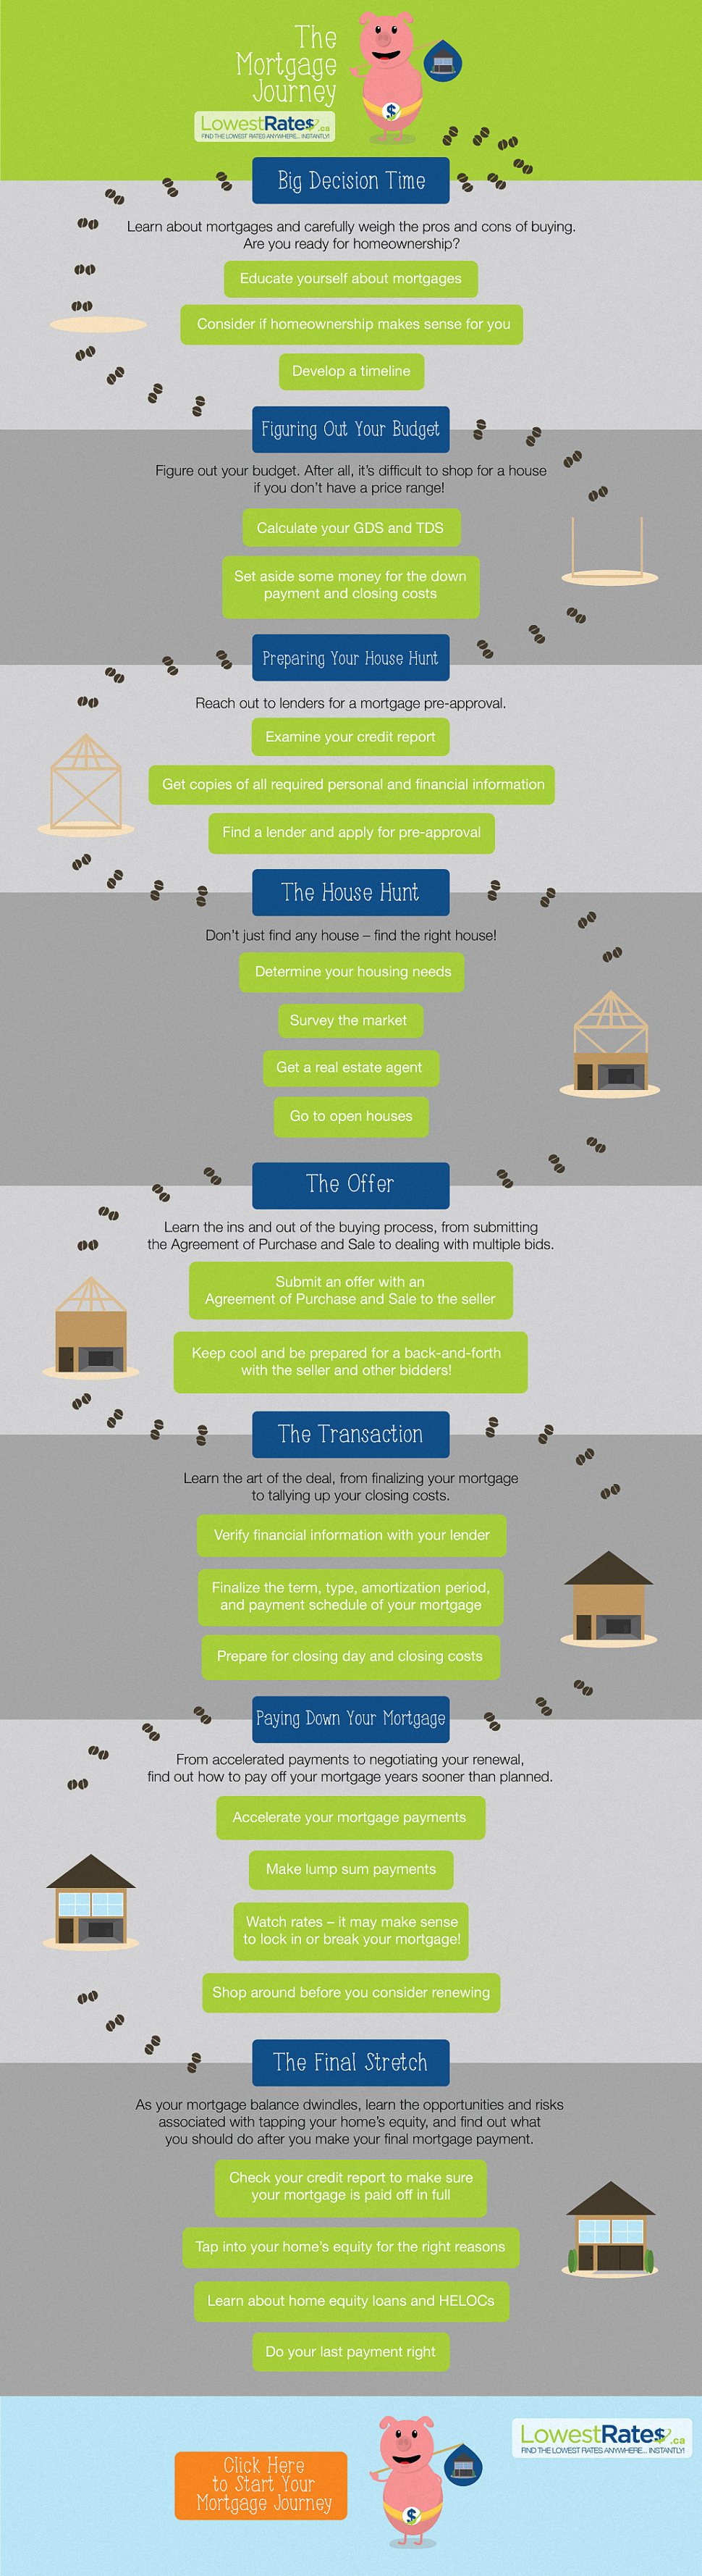 Mortgage Journey Infographic